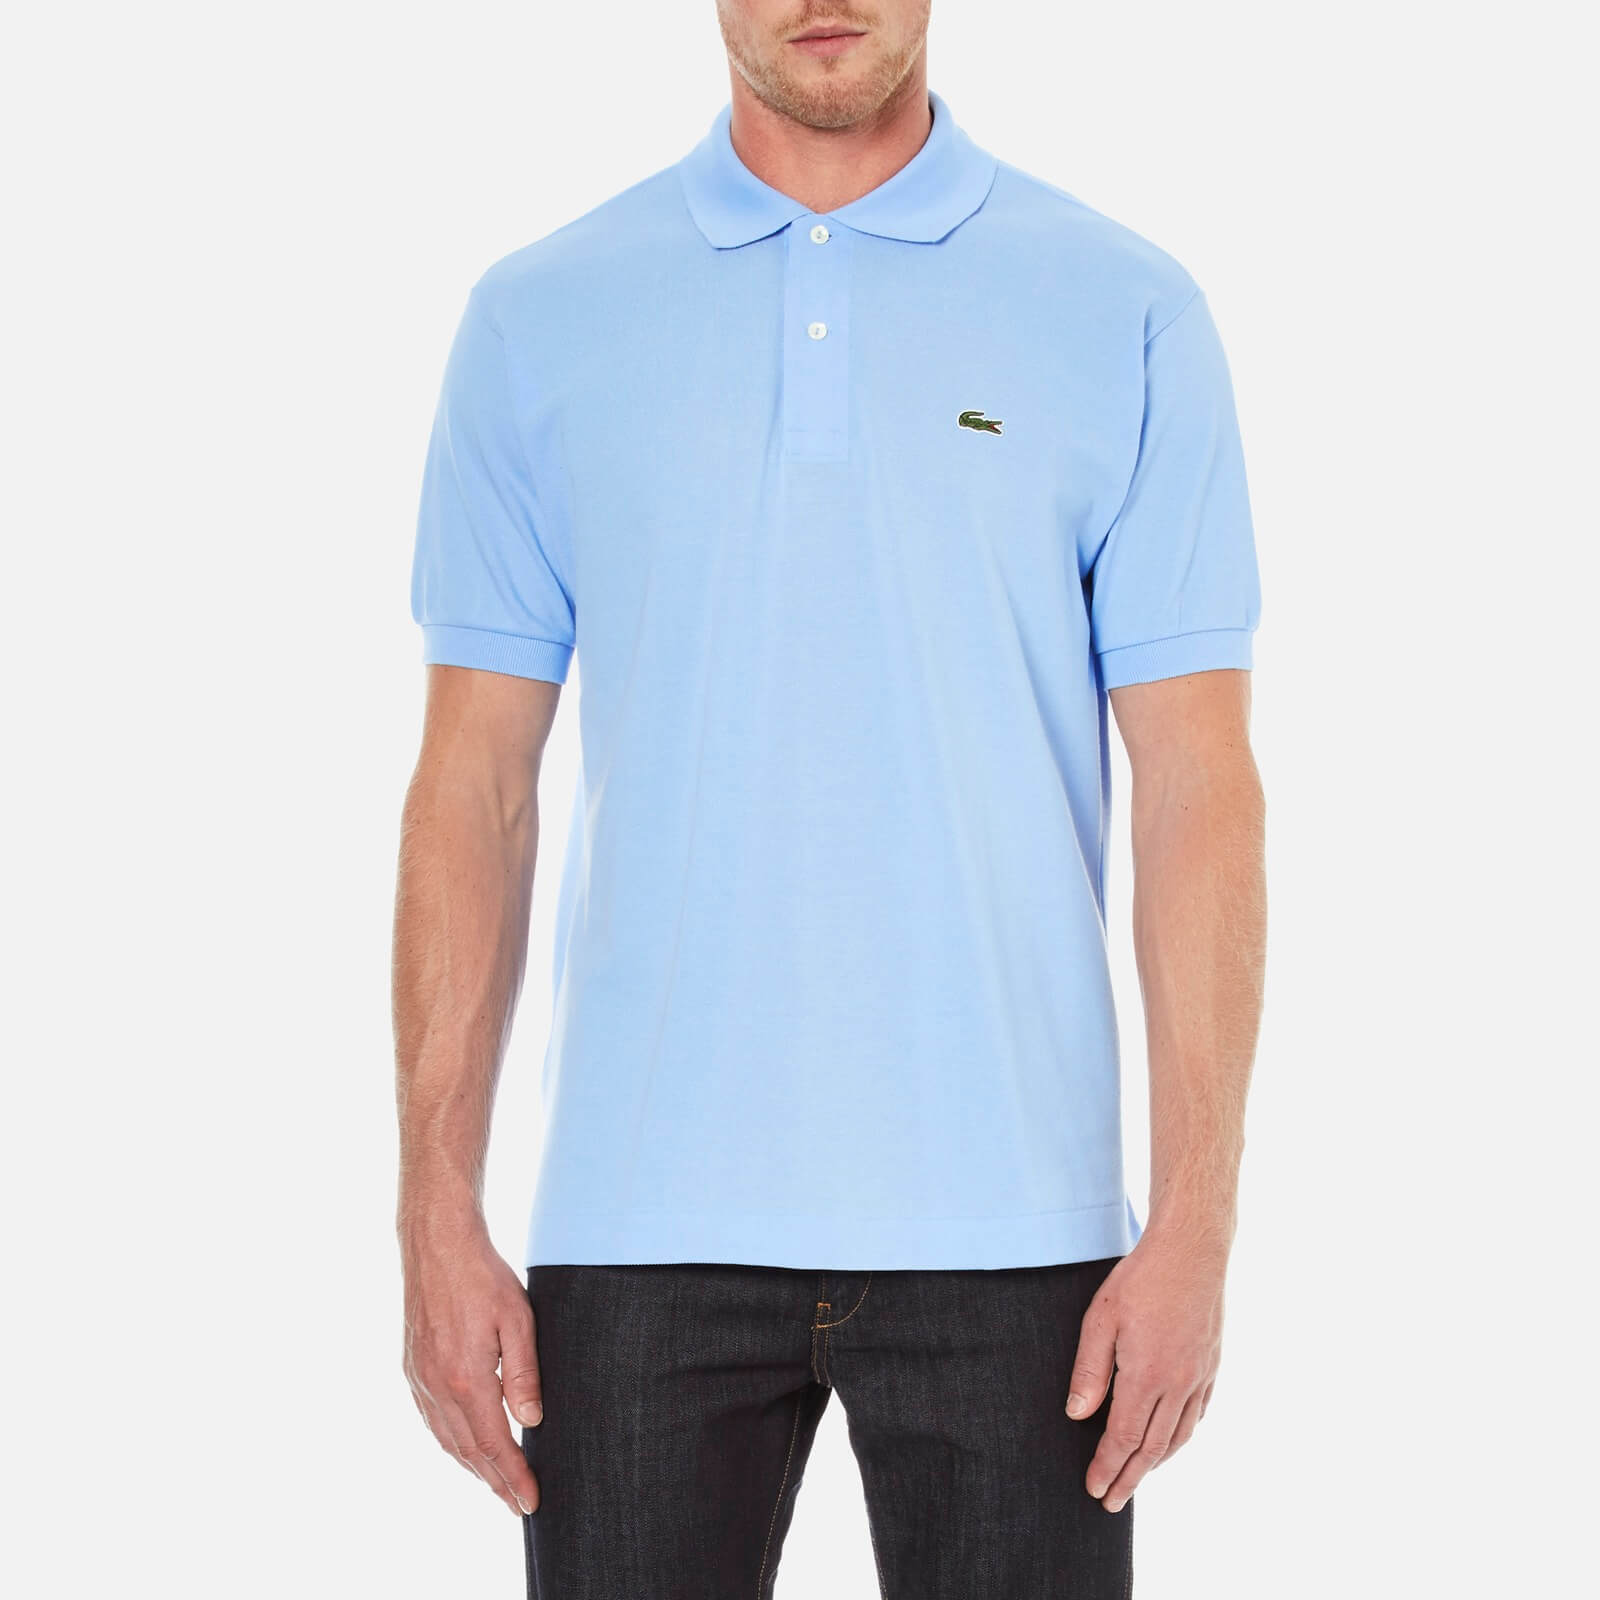 bf1772b2 Lacoste Men's Short Sleeve Pique Polo Shirt - Nattier Blue